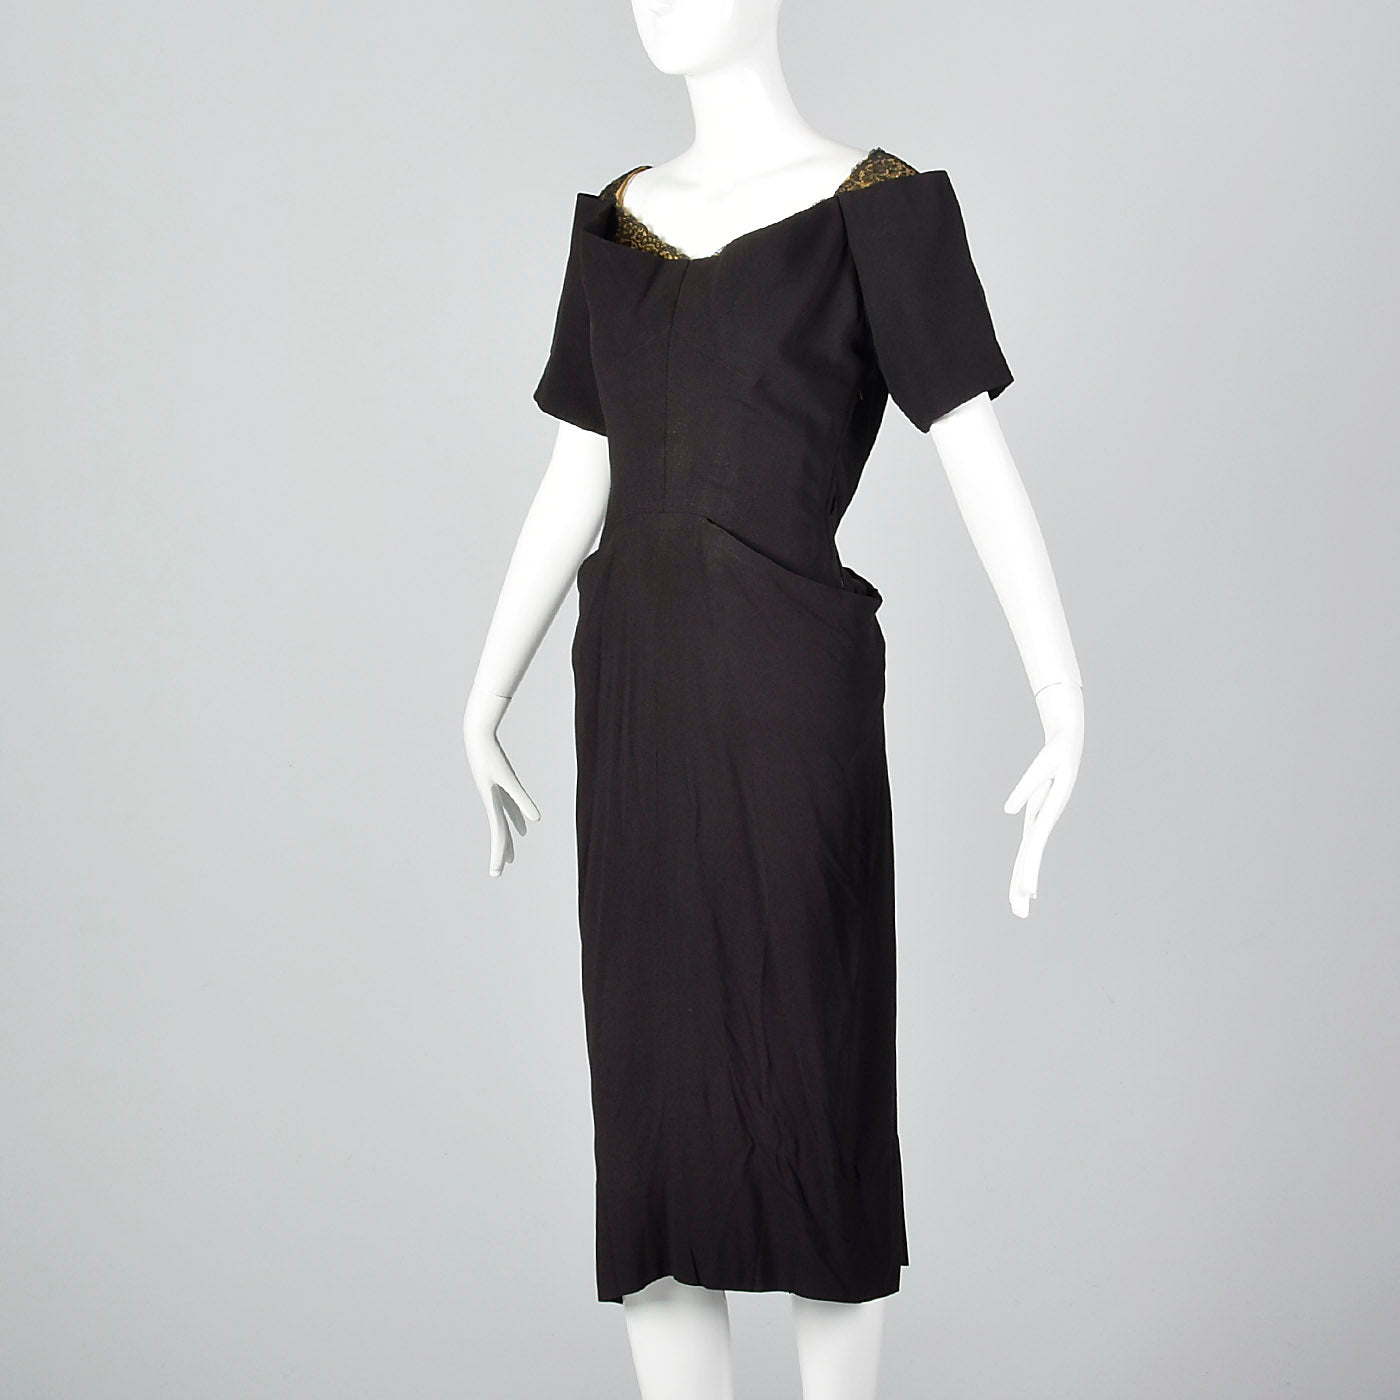 1940s Black Rayon Dress with Gold Trim